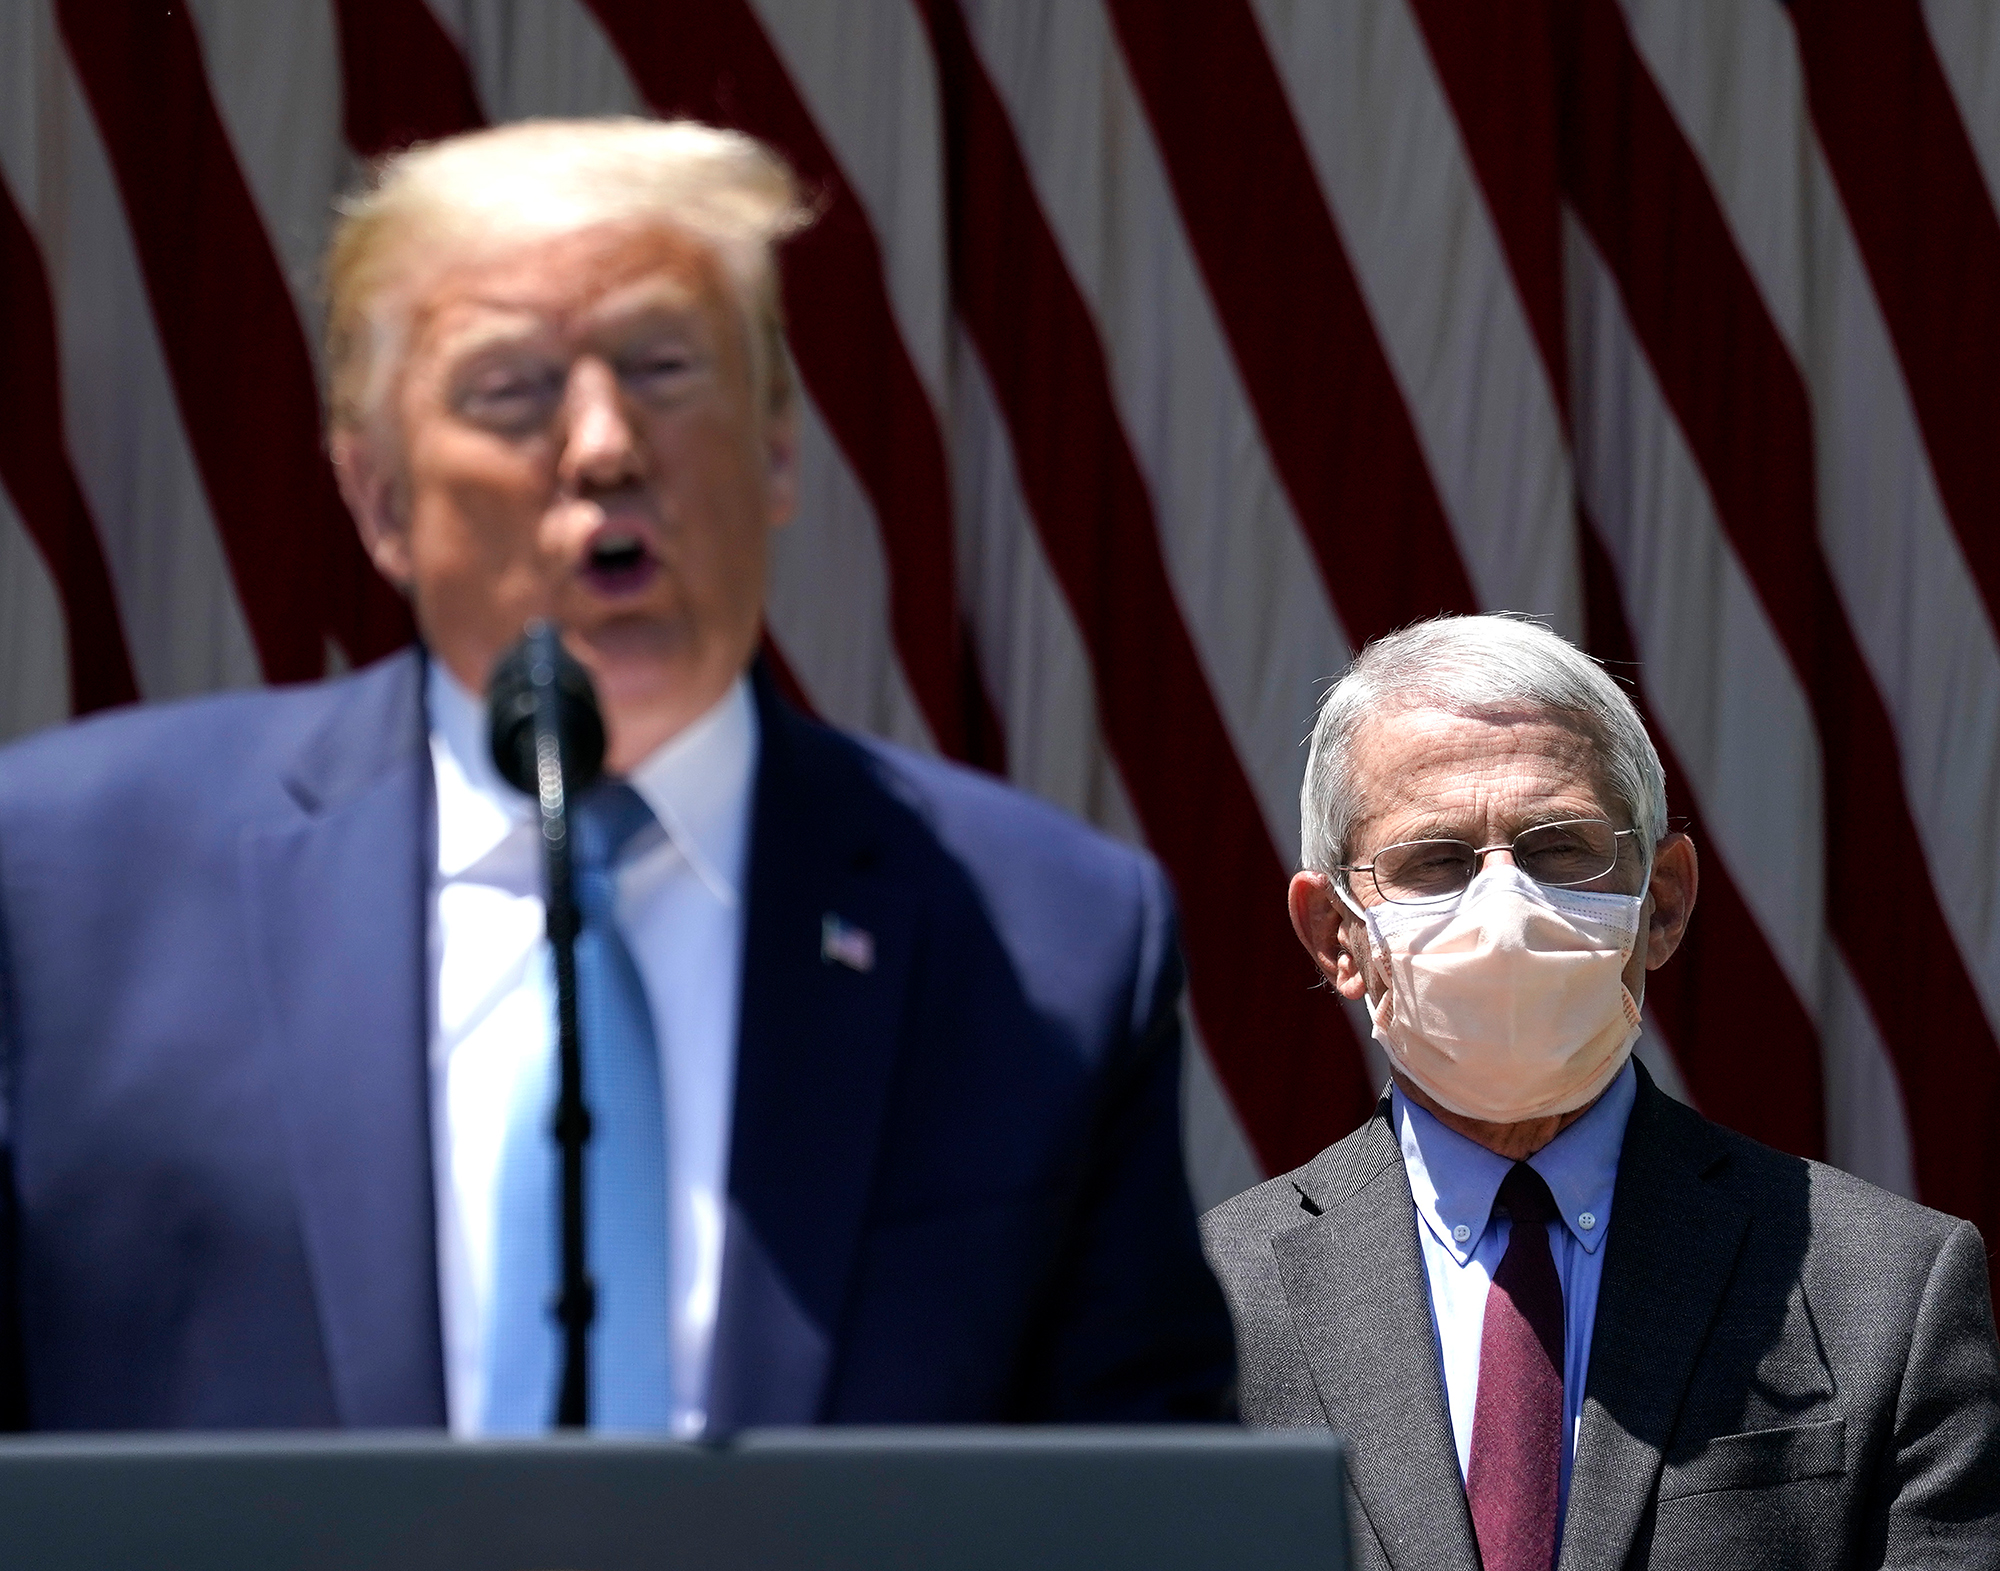 Dr. Anthony Fauci listens during a speech by President Donald Trump about coronavirus vaccine development in the Rose Garden of the White House on May 15, 2020 in Washington, DC.